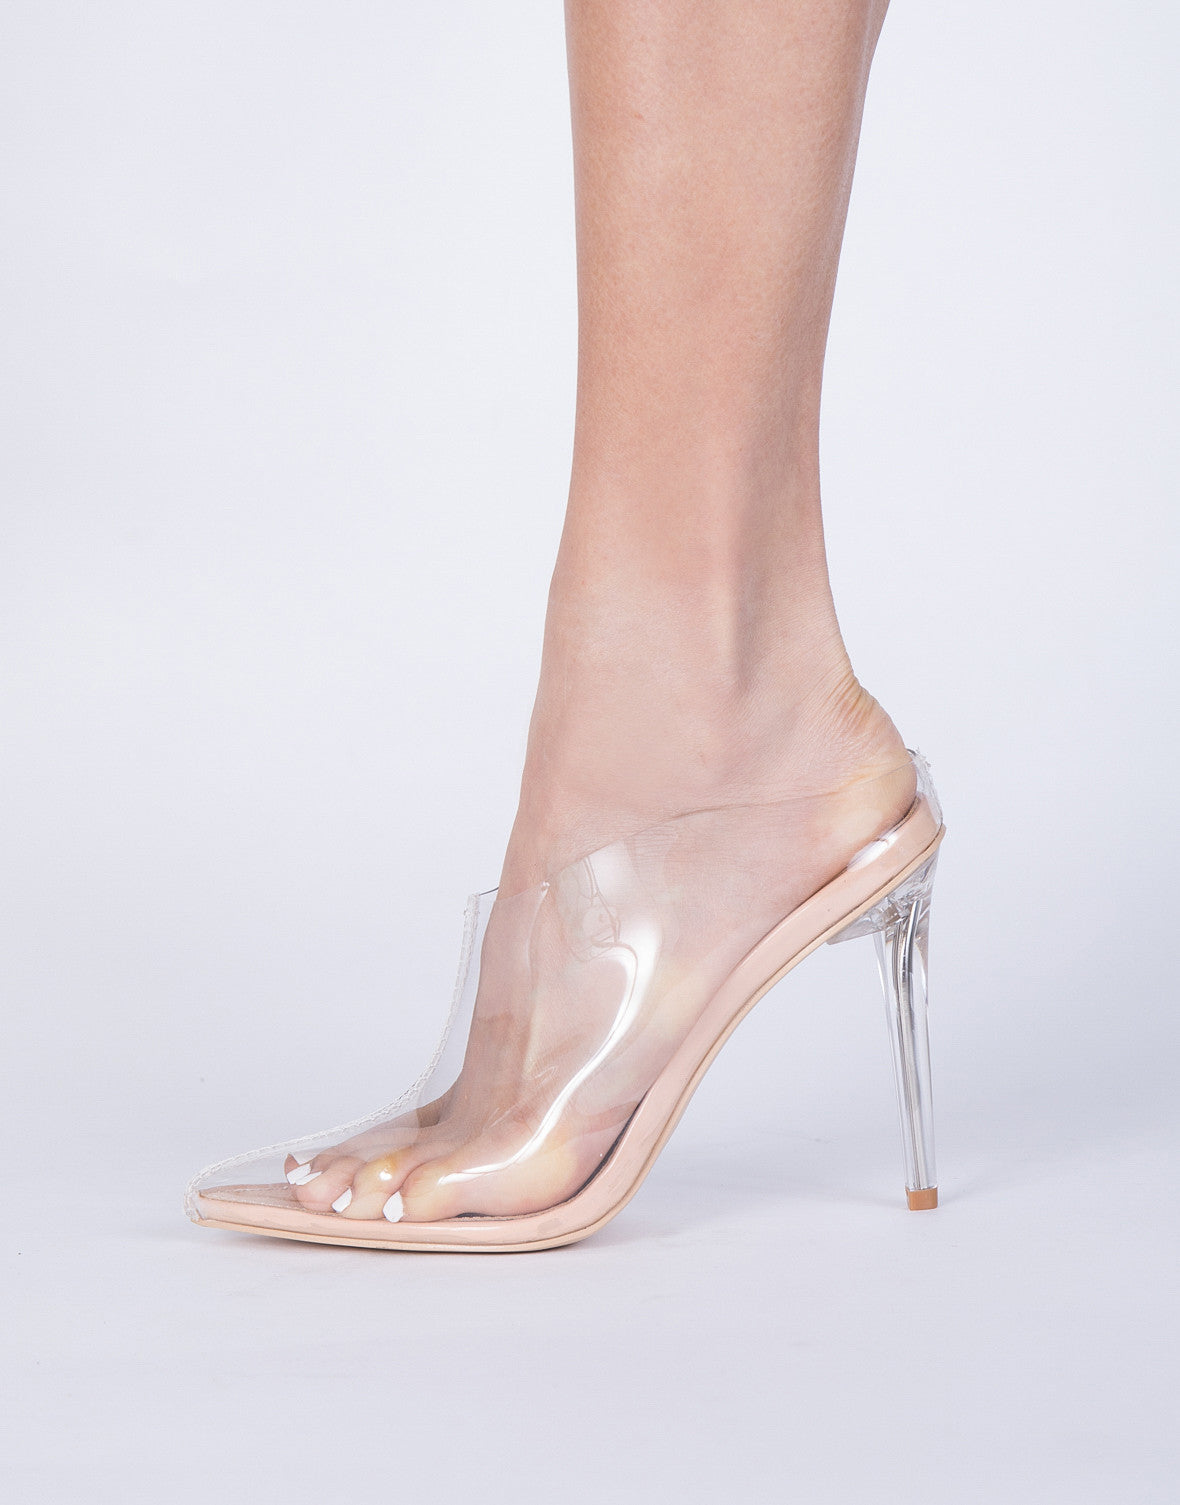 559b3106cb7c Point Clearly Heels - Clear Lucite Heels - Clear Mule Slide Heels ...